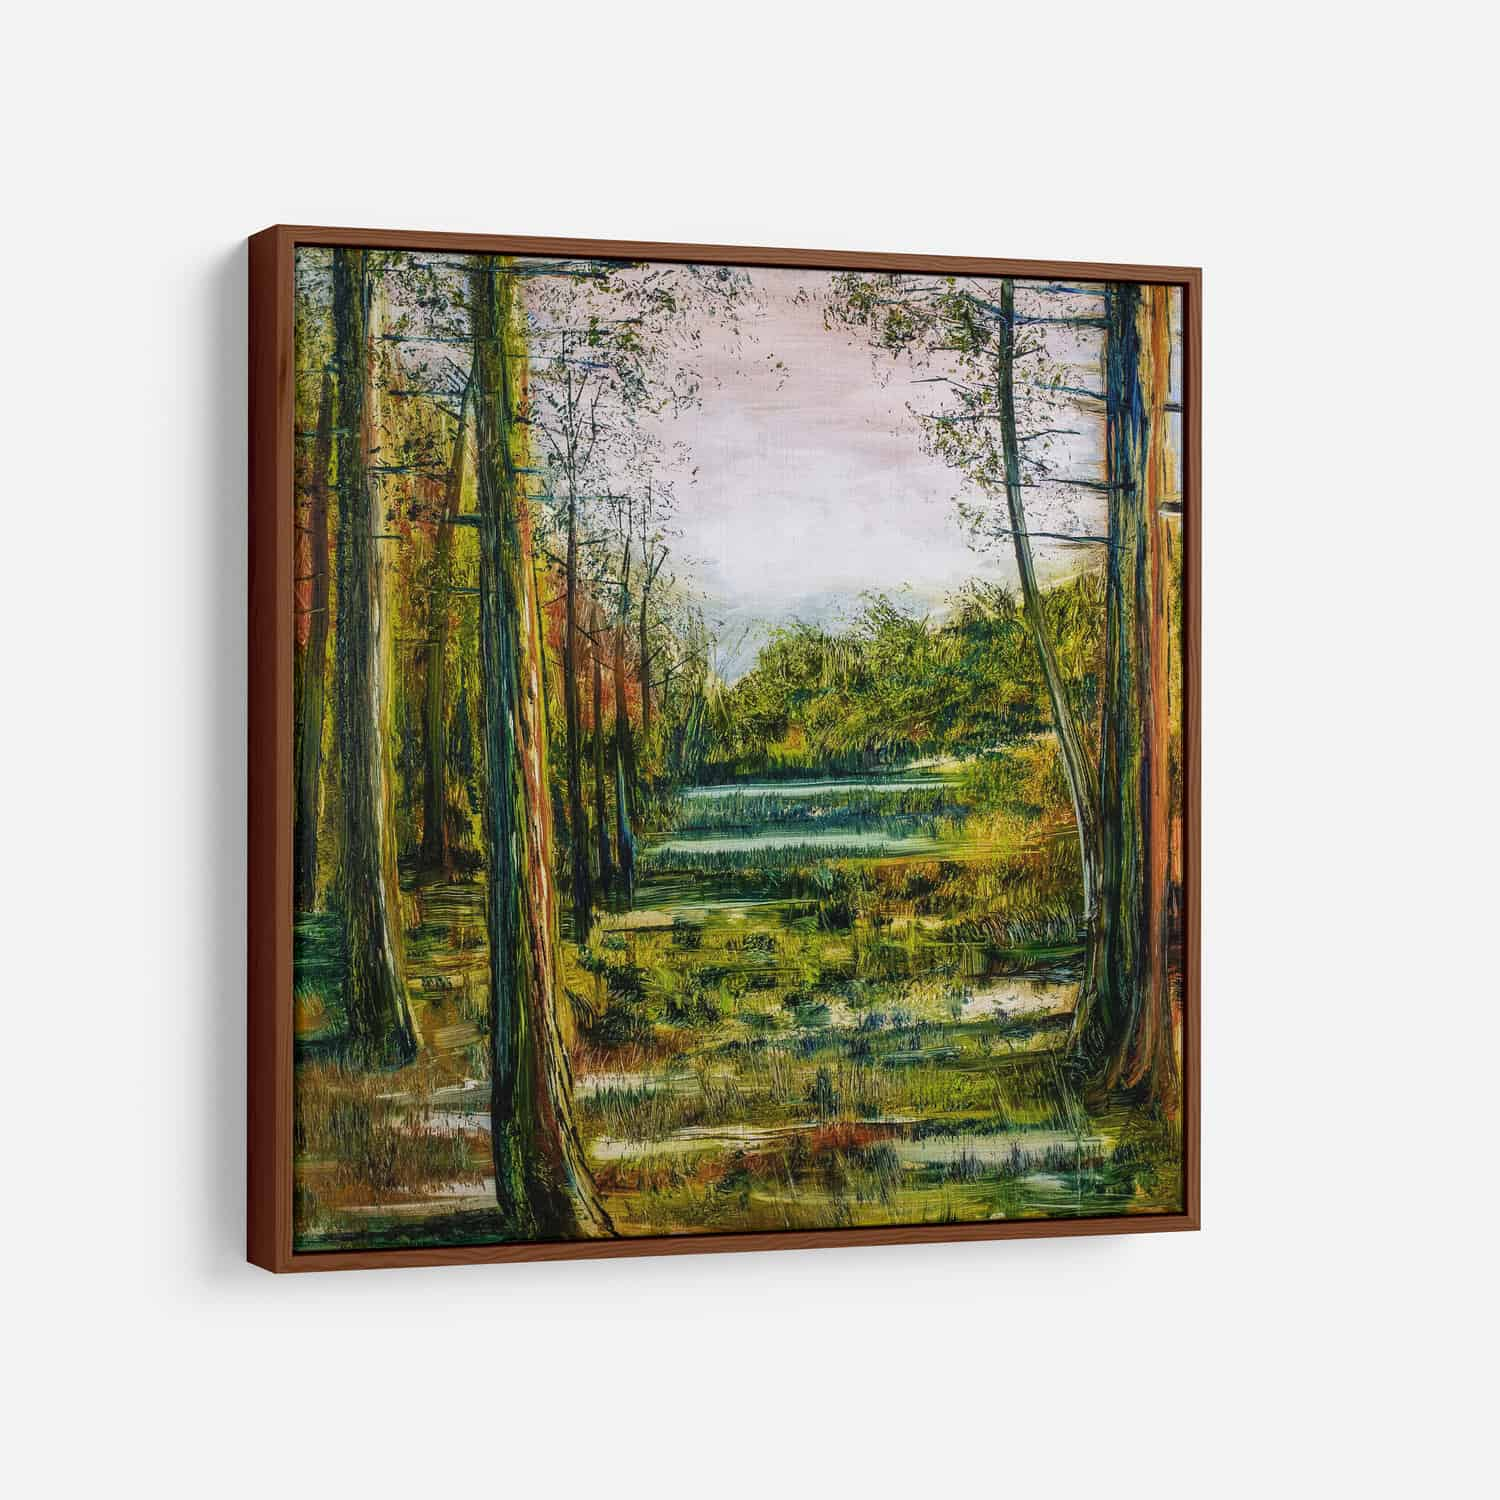 Oil painting of forest on wood panel